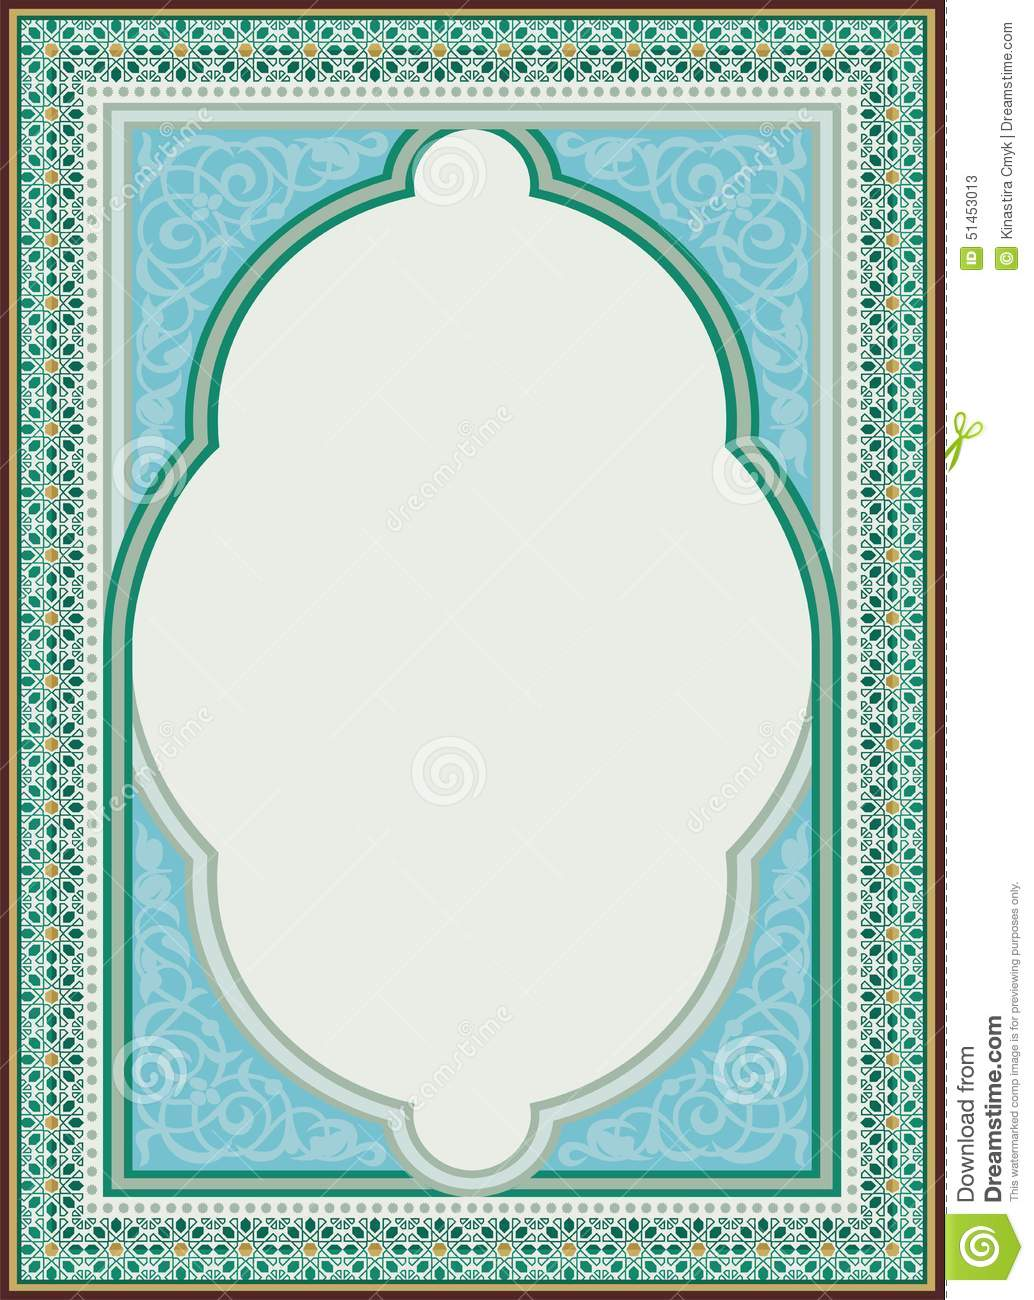 ... art border frame design suitable for koran or islamic book and other